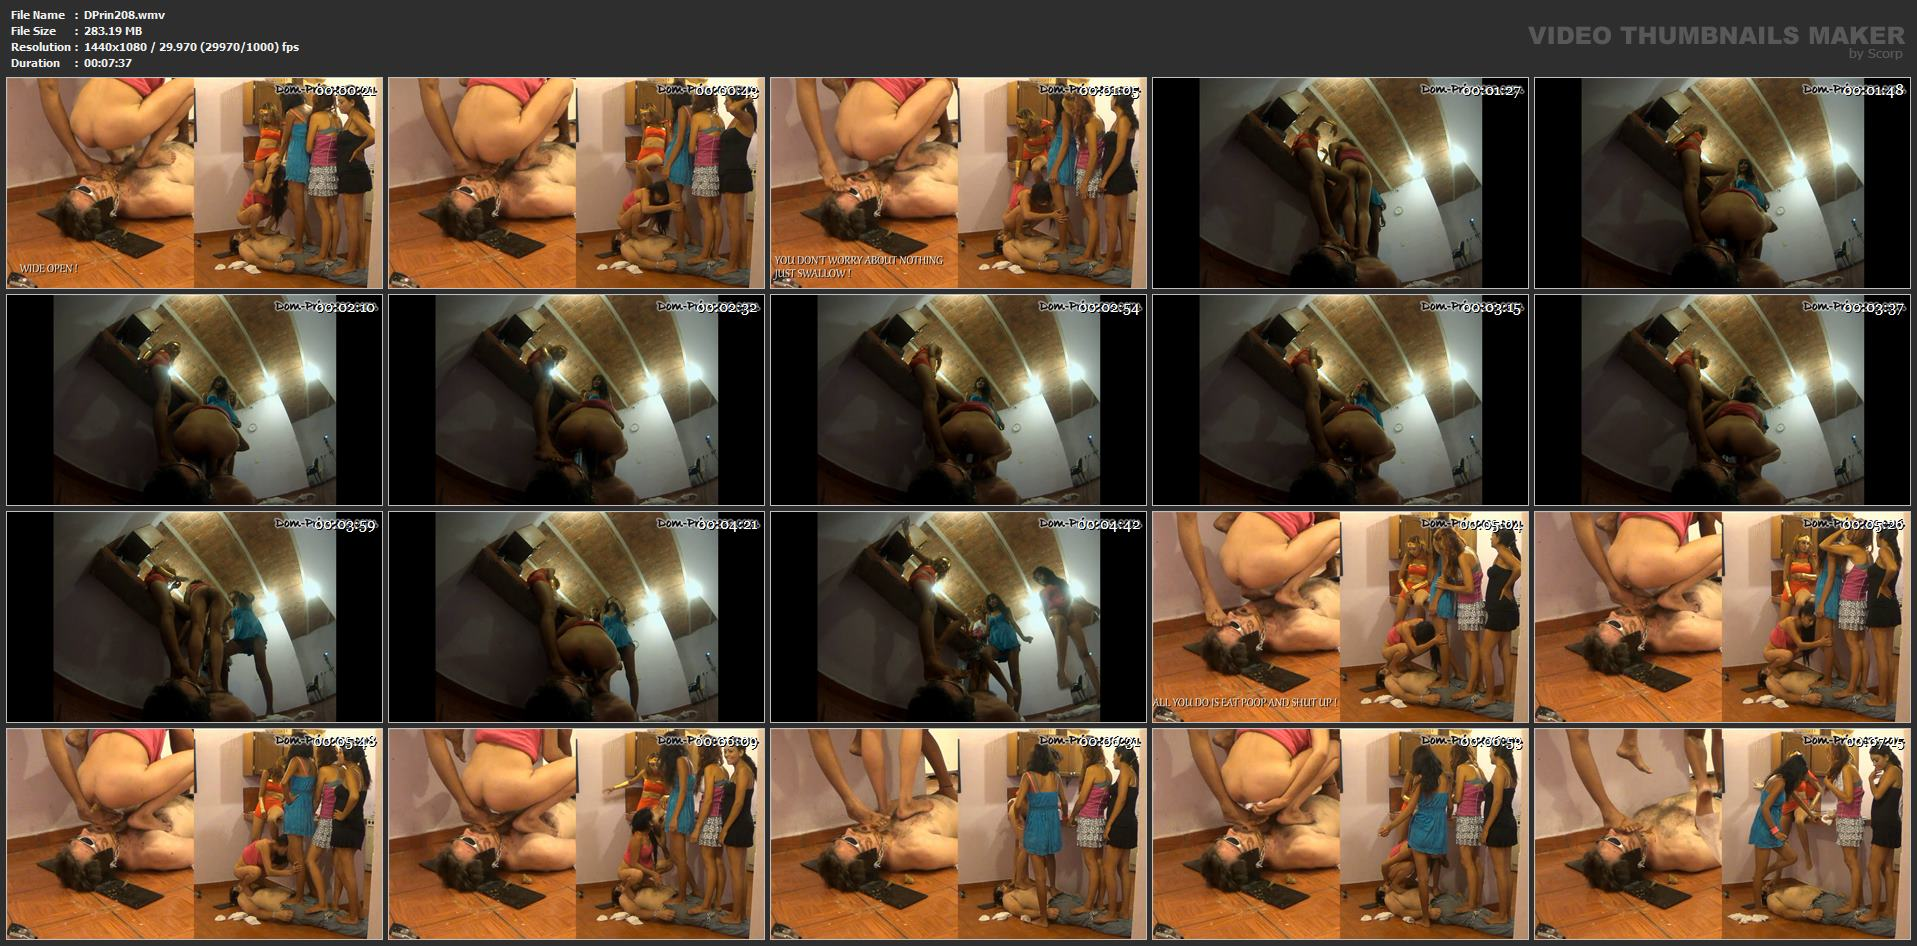 [DOM-PRINCESS] The Stand on Poop Session Part 4 Samantha [FULL HD][1080p][WMV]